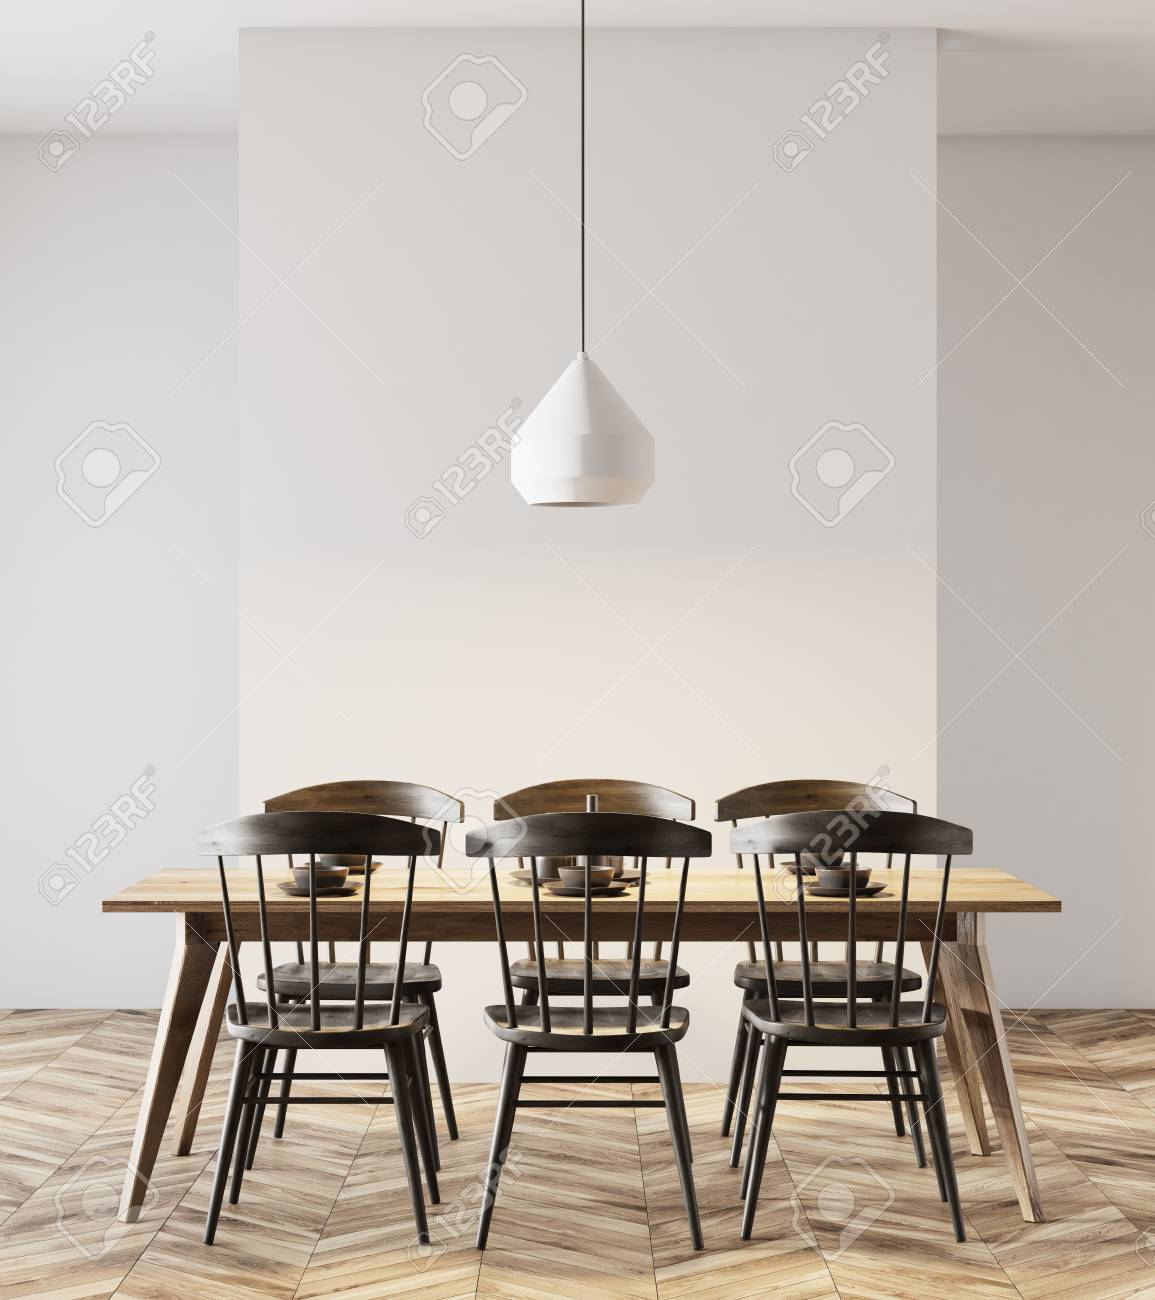 Picture of: White Wall Dining Room Interior With A Wooden Floor A Long Wooden Stock Photo Picture And Royalty Free Image Image 97635299